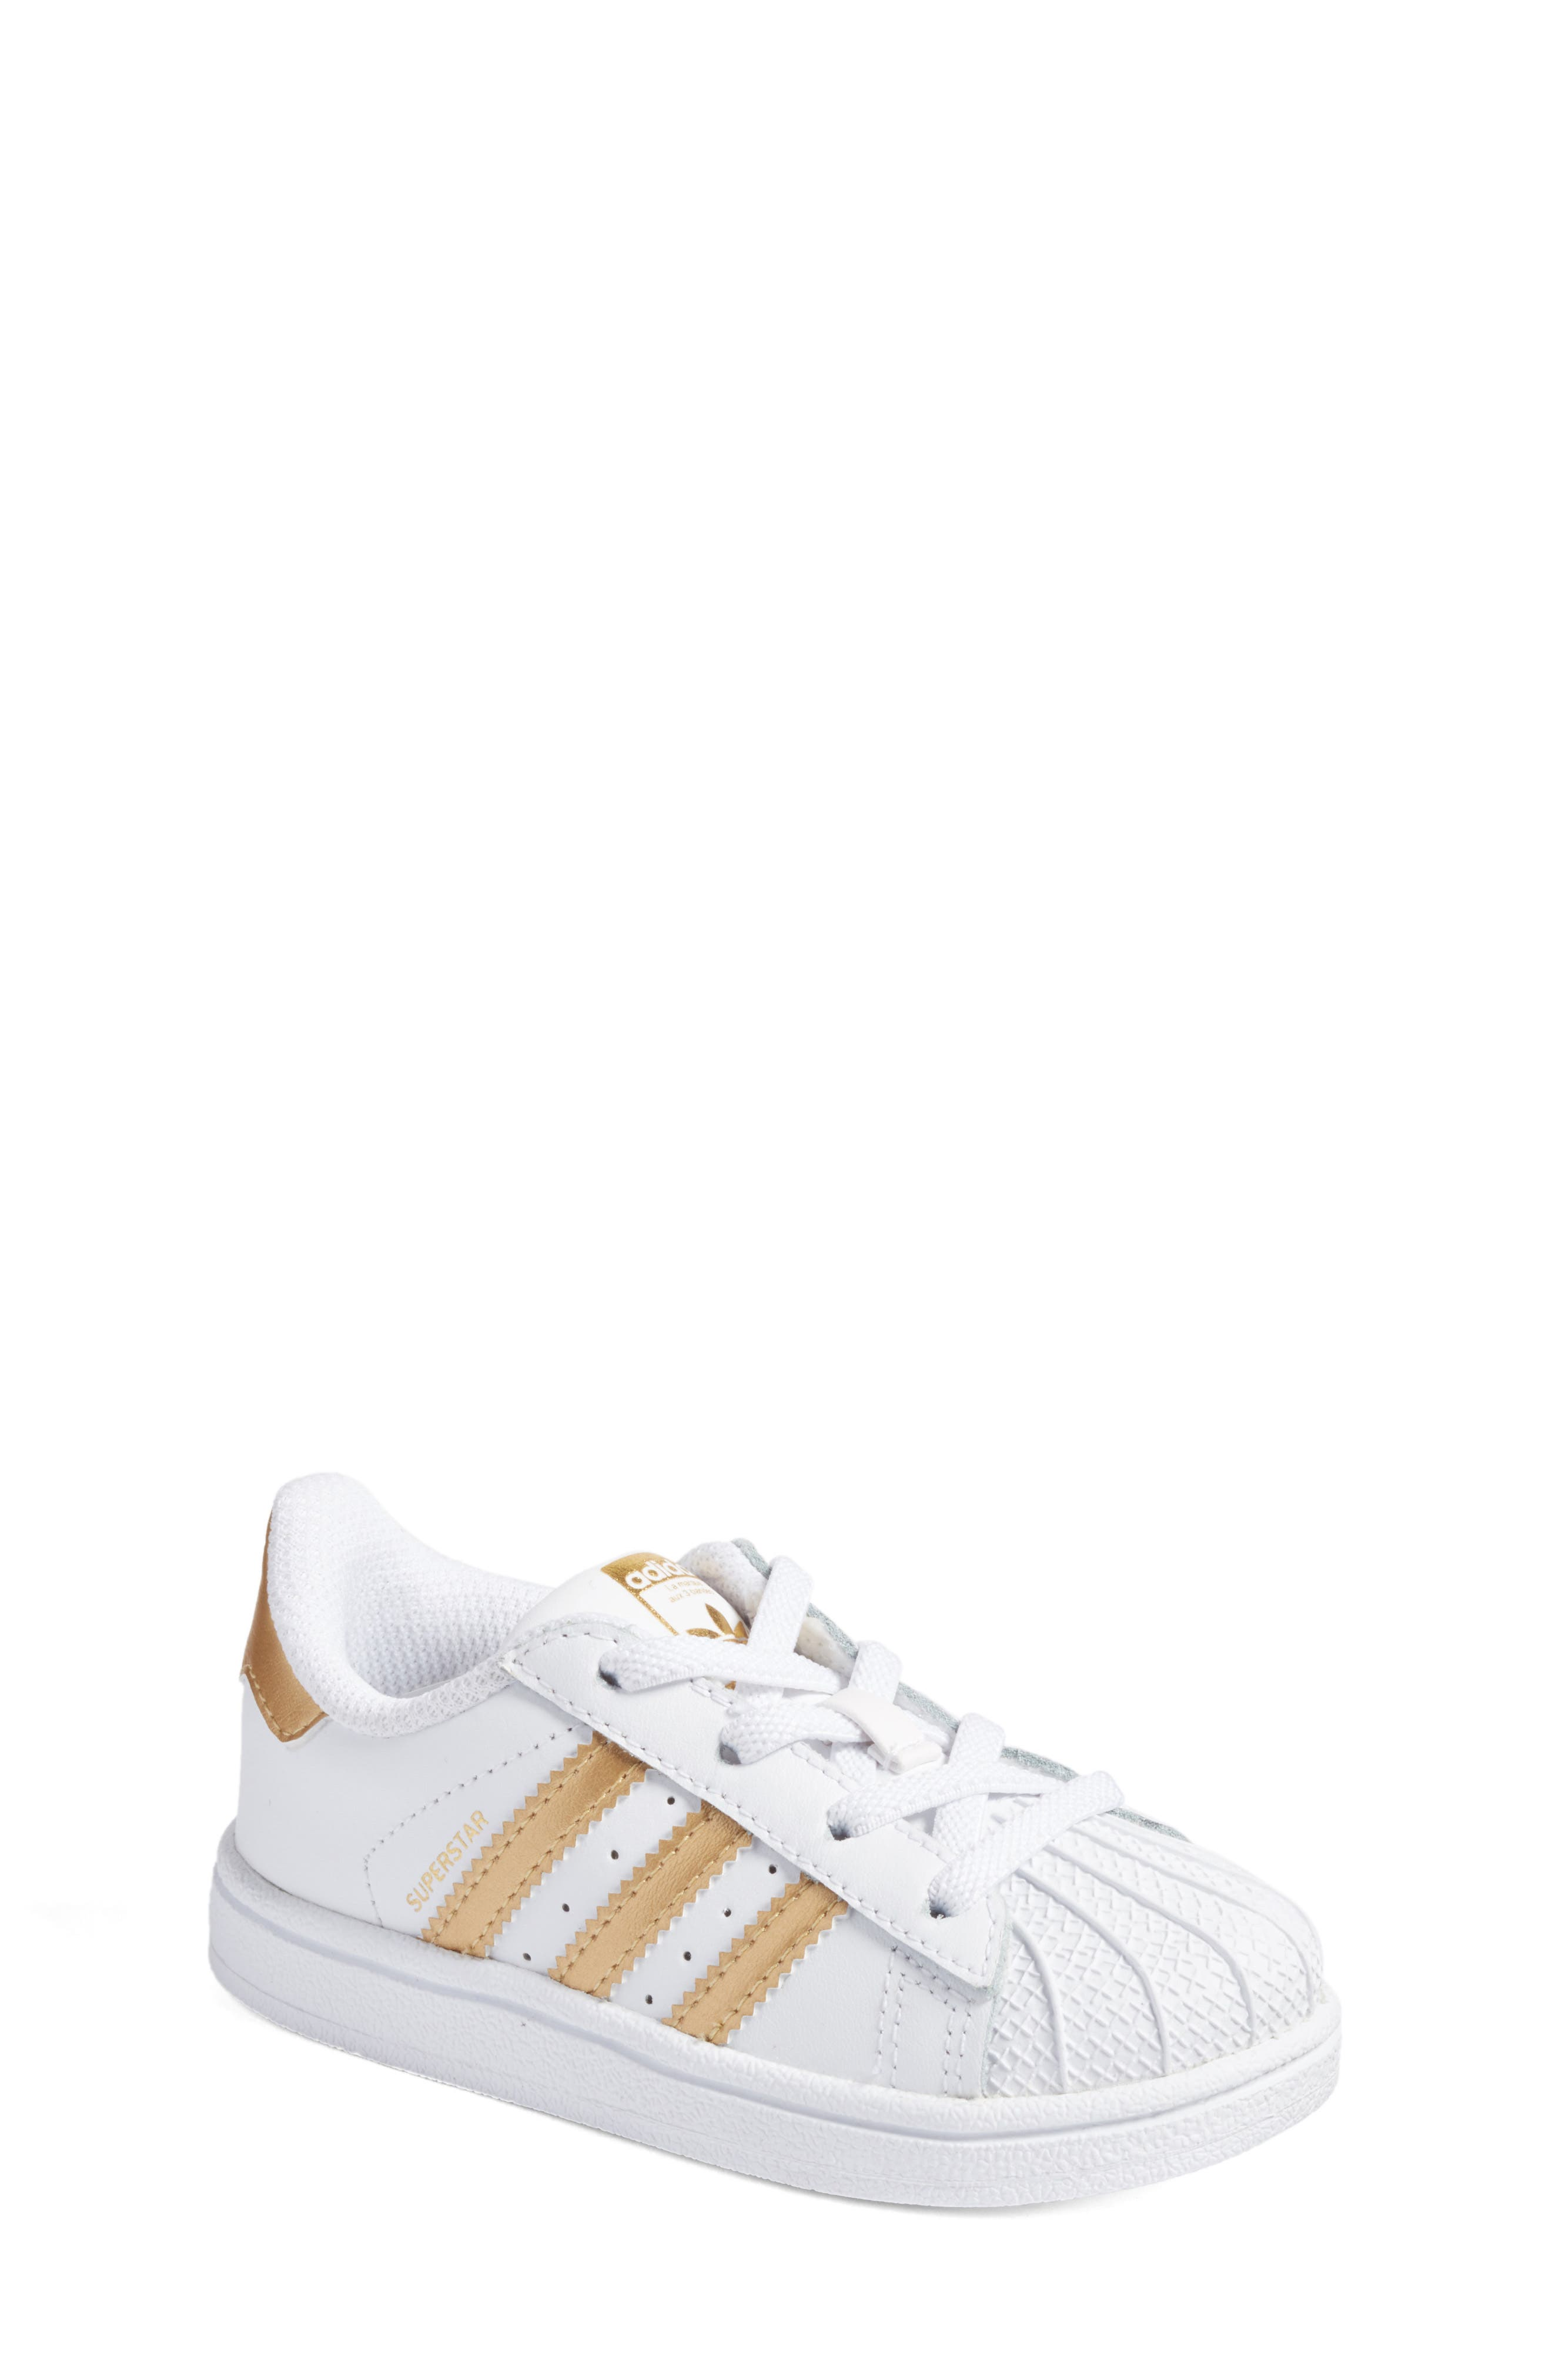 adidas Superstar I Sneaker (Baby, Walker \u0026 Toddler)